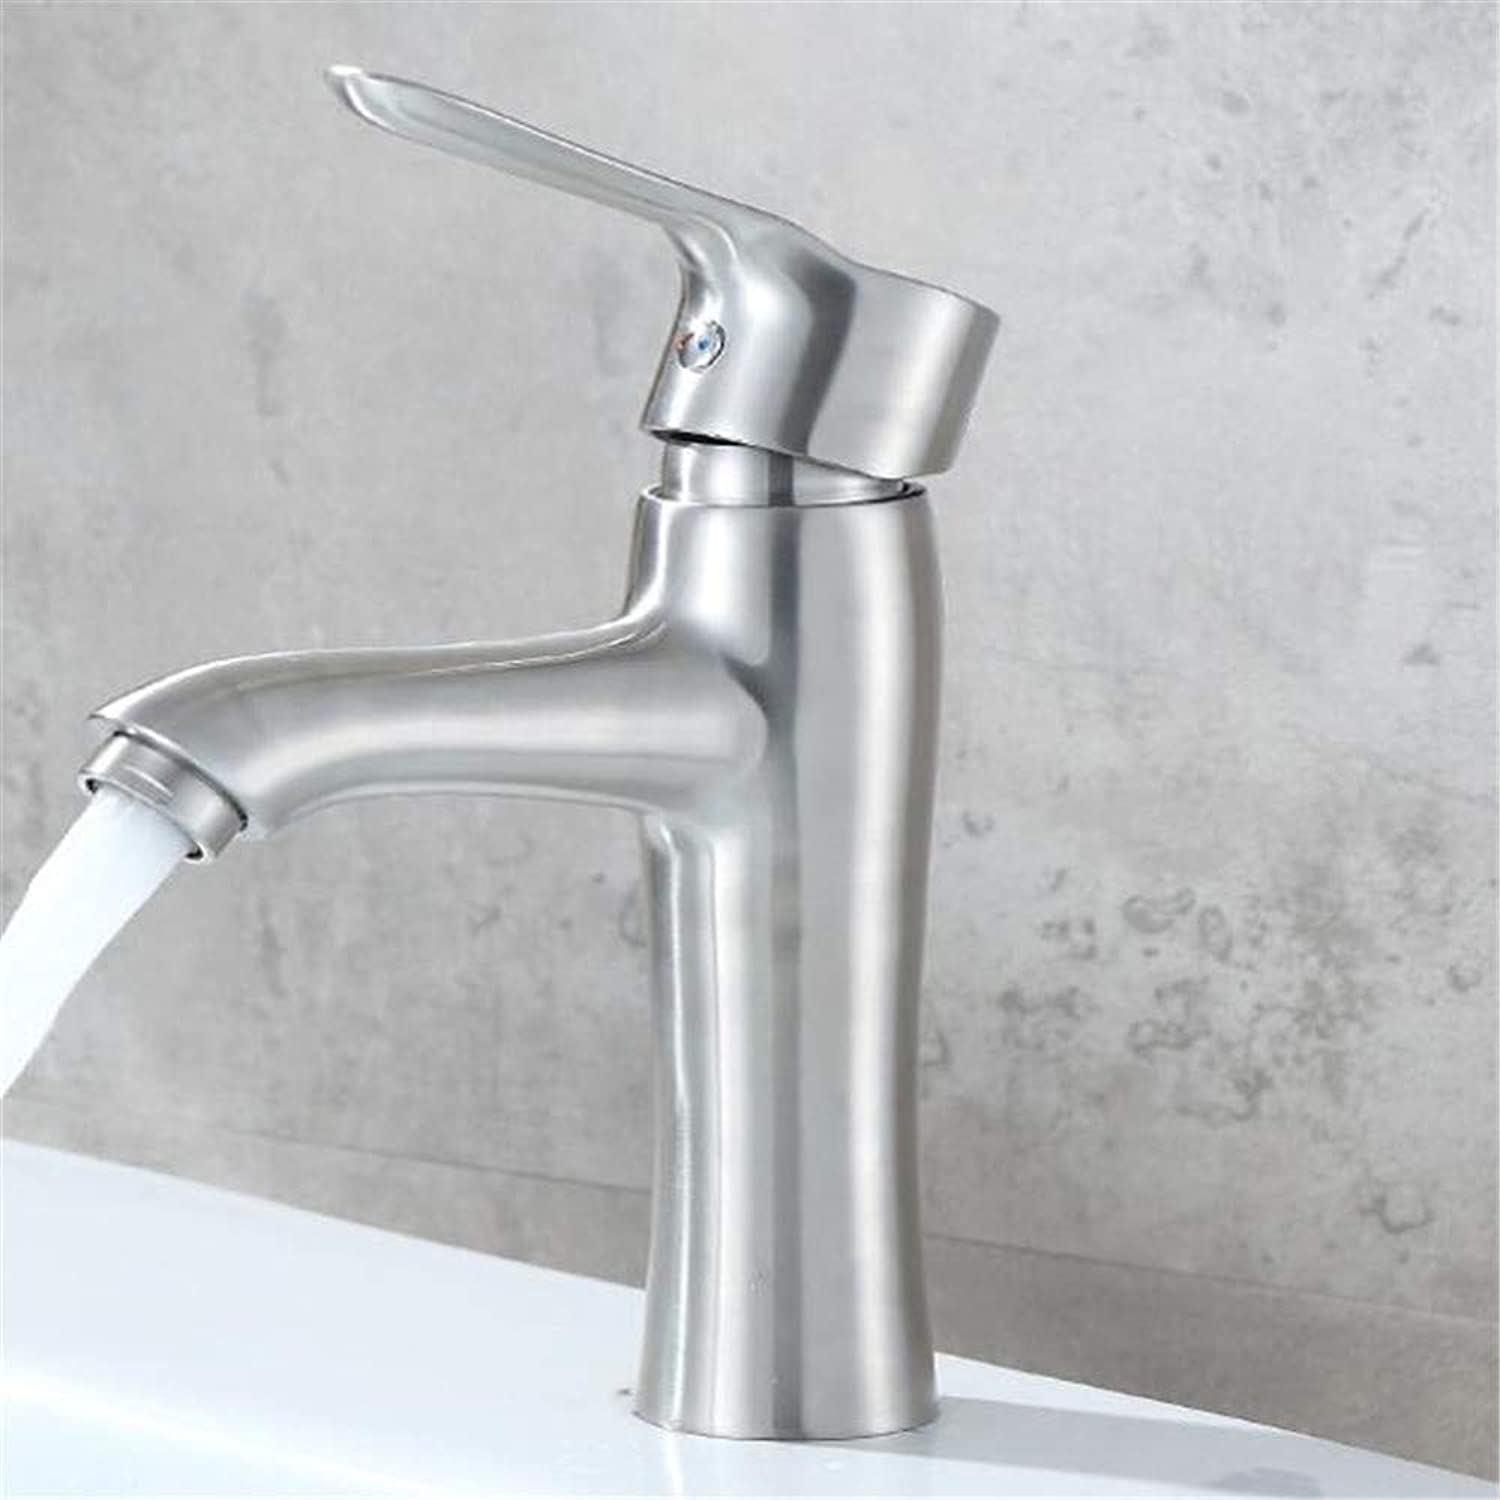 304 Stainless Steel Single Hole Basin hot and Cold Faucet Bathroom Bathroom Cabinet wash Basin Sink Faucet